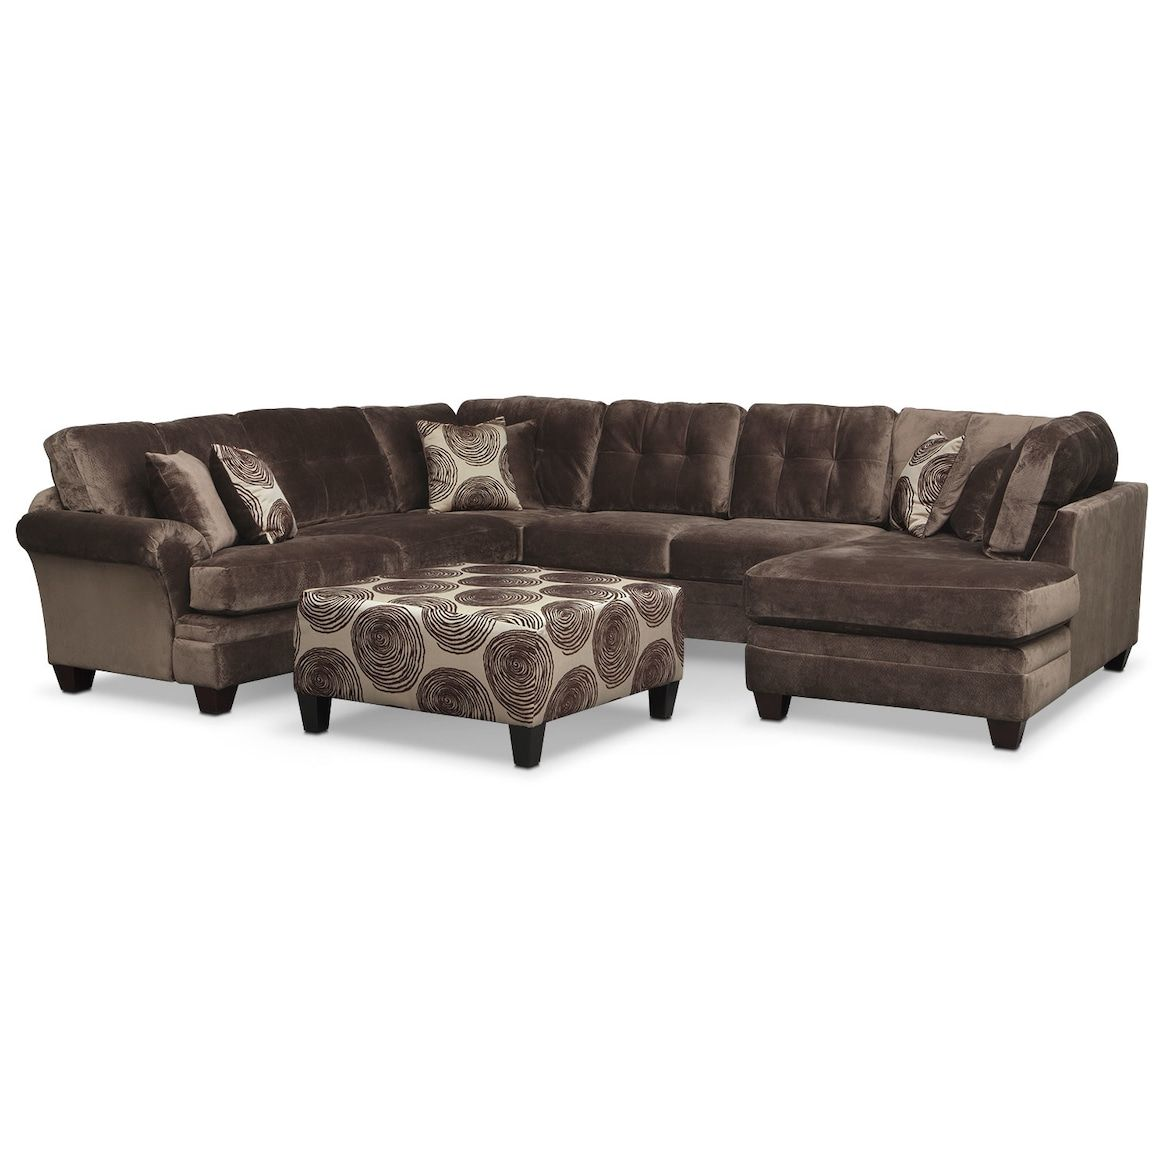 Cordelle 3 Piece Sectional With Right Facing Chaise And Cocktail Ottoman Set Value City Furniture And Mattr Cheap Living Room Furniture Cheap Living Room Sets